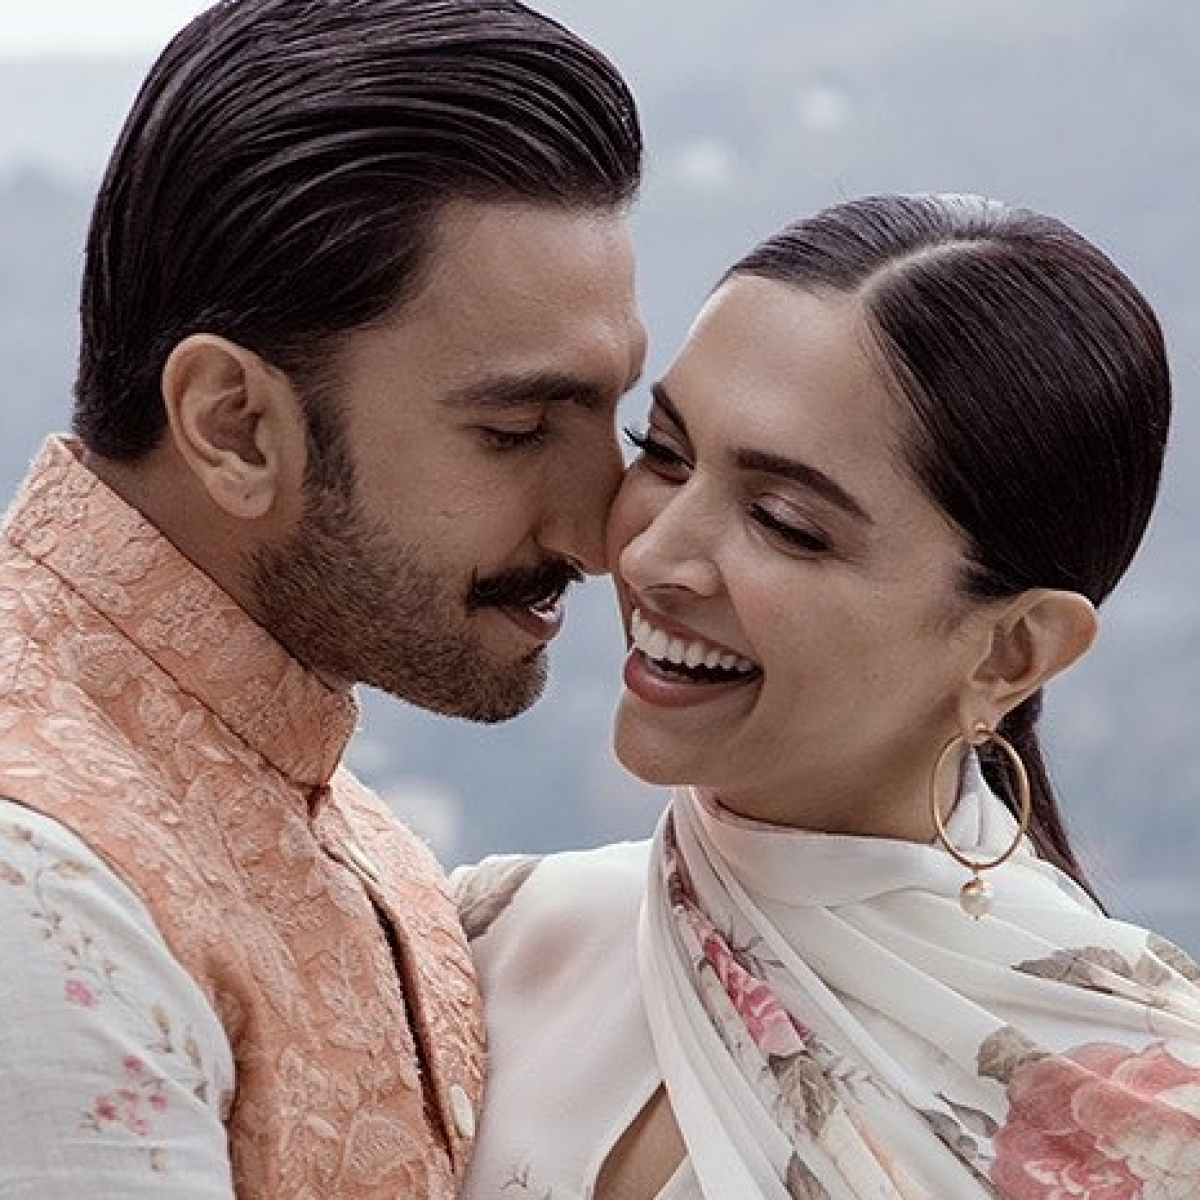 Deepika Padukone poses with Louis Vuitton's newest Coussin PM bag, but it is Ranveer's comment that is grabbing eyeballs